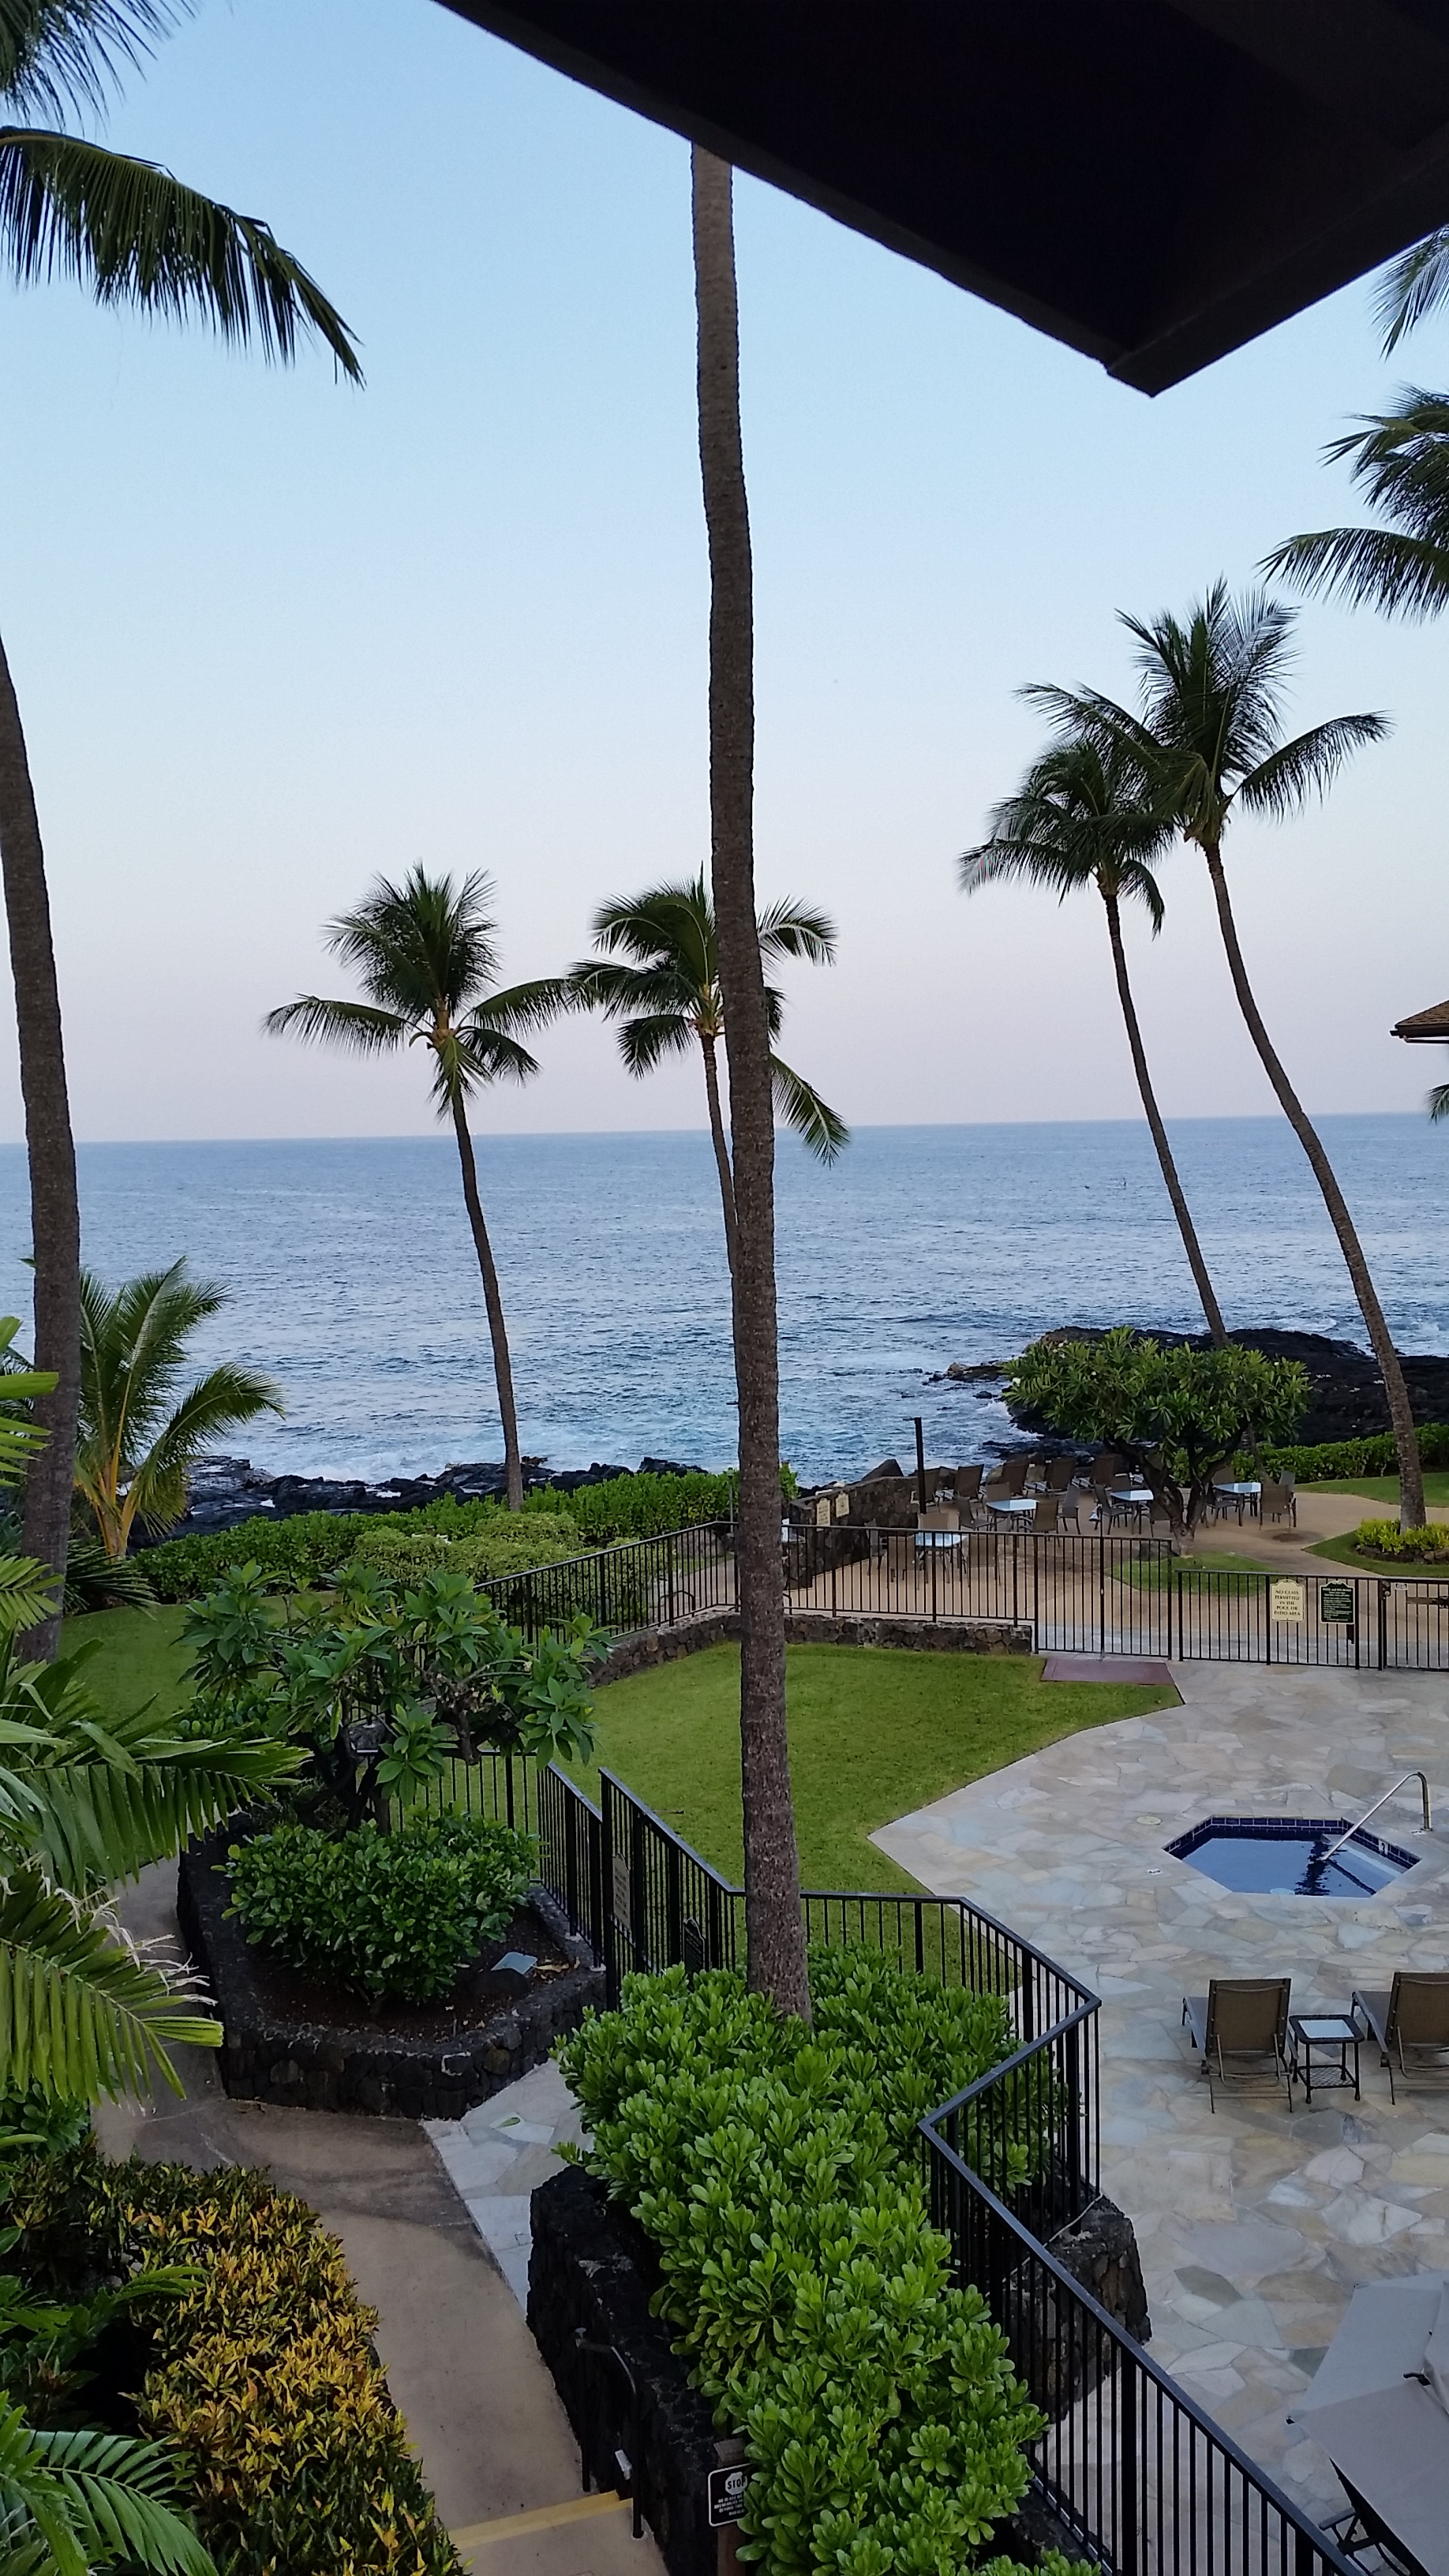 Our condo we rented was somewhat unassuming from the road, but the inside grounds and the view of the ocean were pretty fantastic.